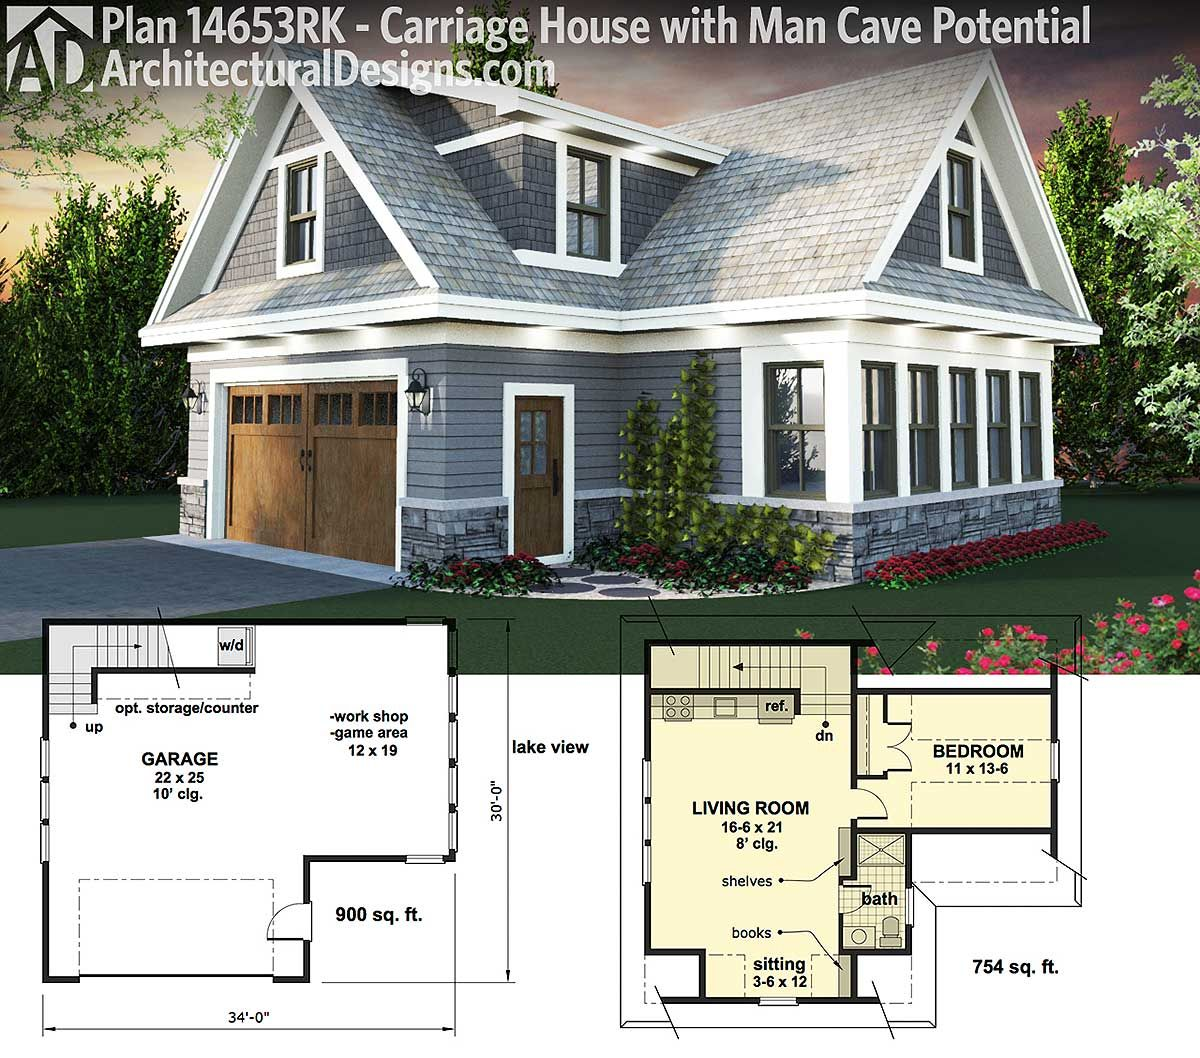 Plan 14653rk carriage house plan with man cave potential for Carriage home plans